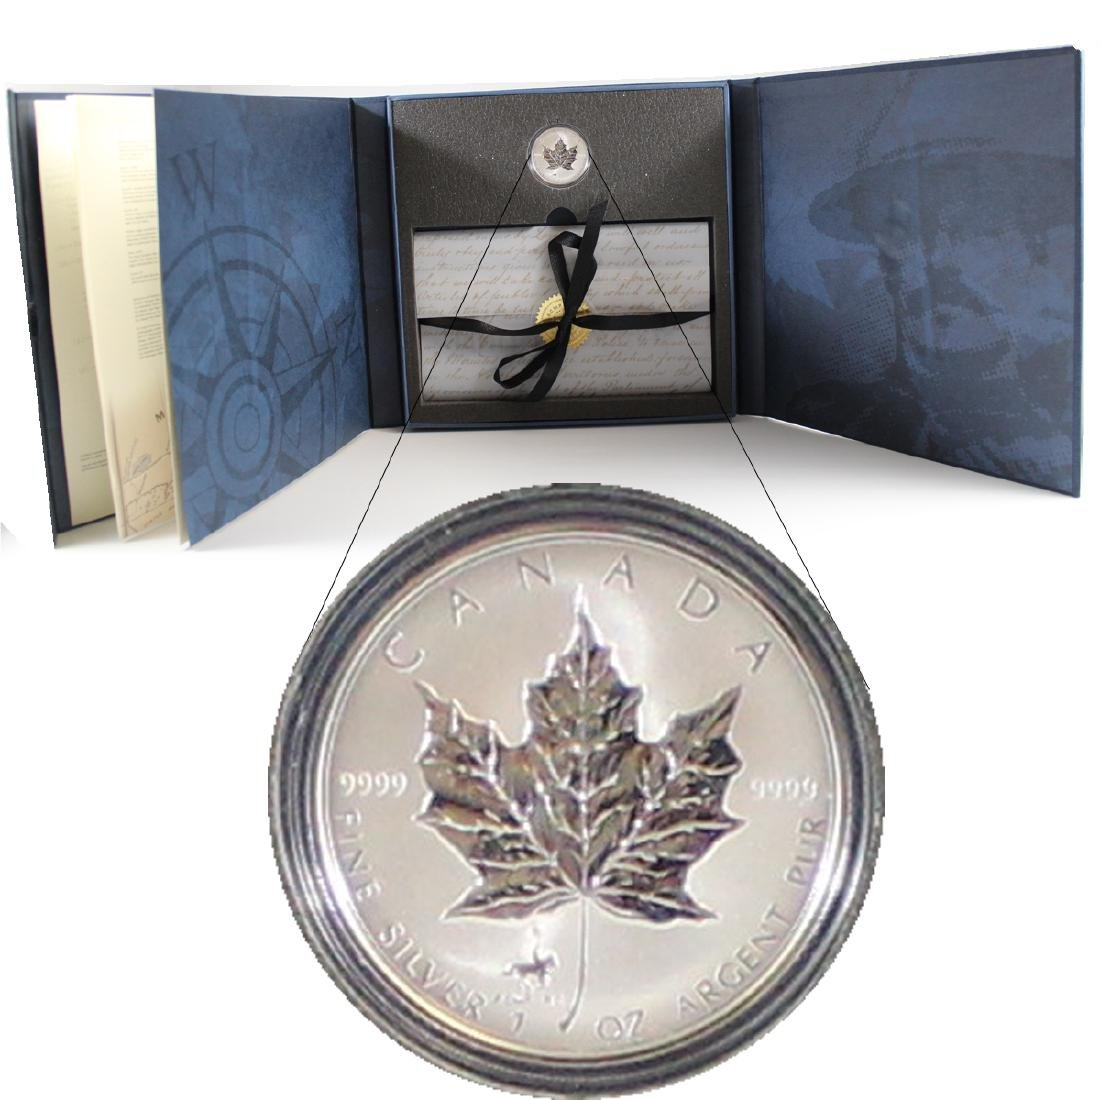 1998 Canada Royal Canadian Mounted Police (RCMP) Privy